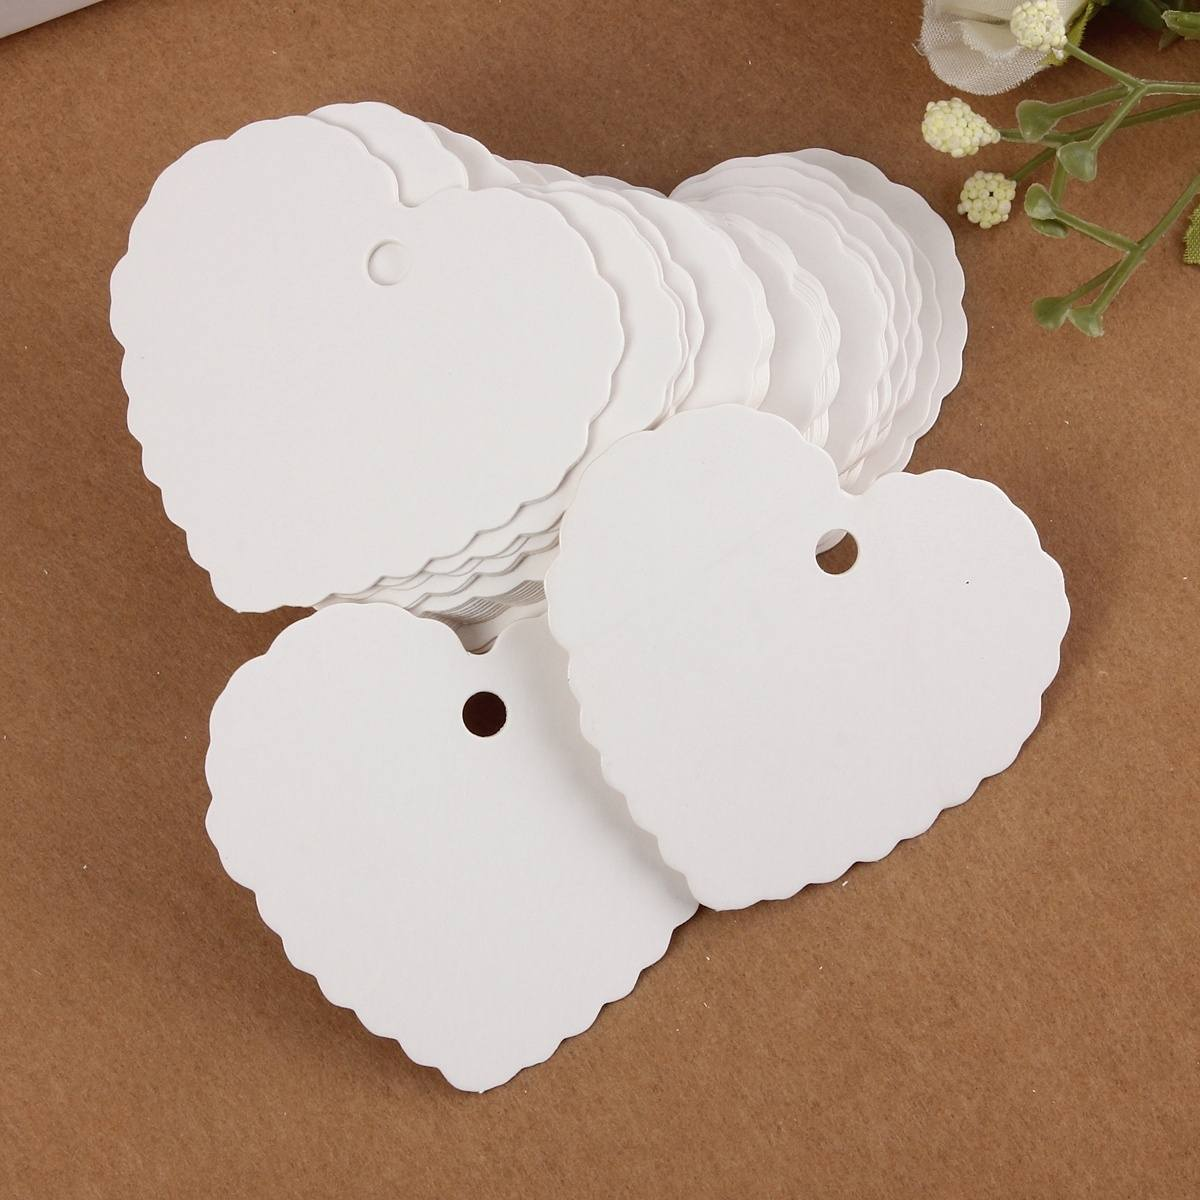 50X Mini Blank Heart shape Kraft Paper Hang Tags Wedding Party Label Price Gift Cards Bookmark Maker